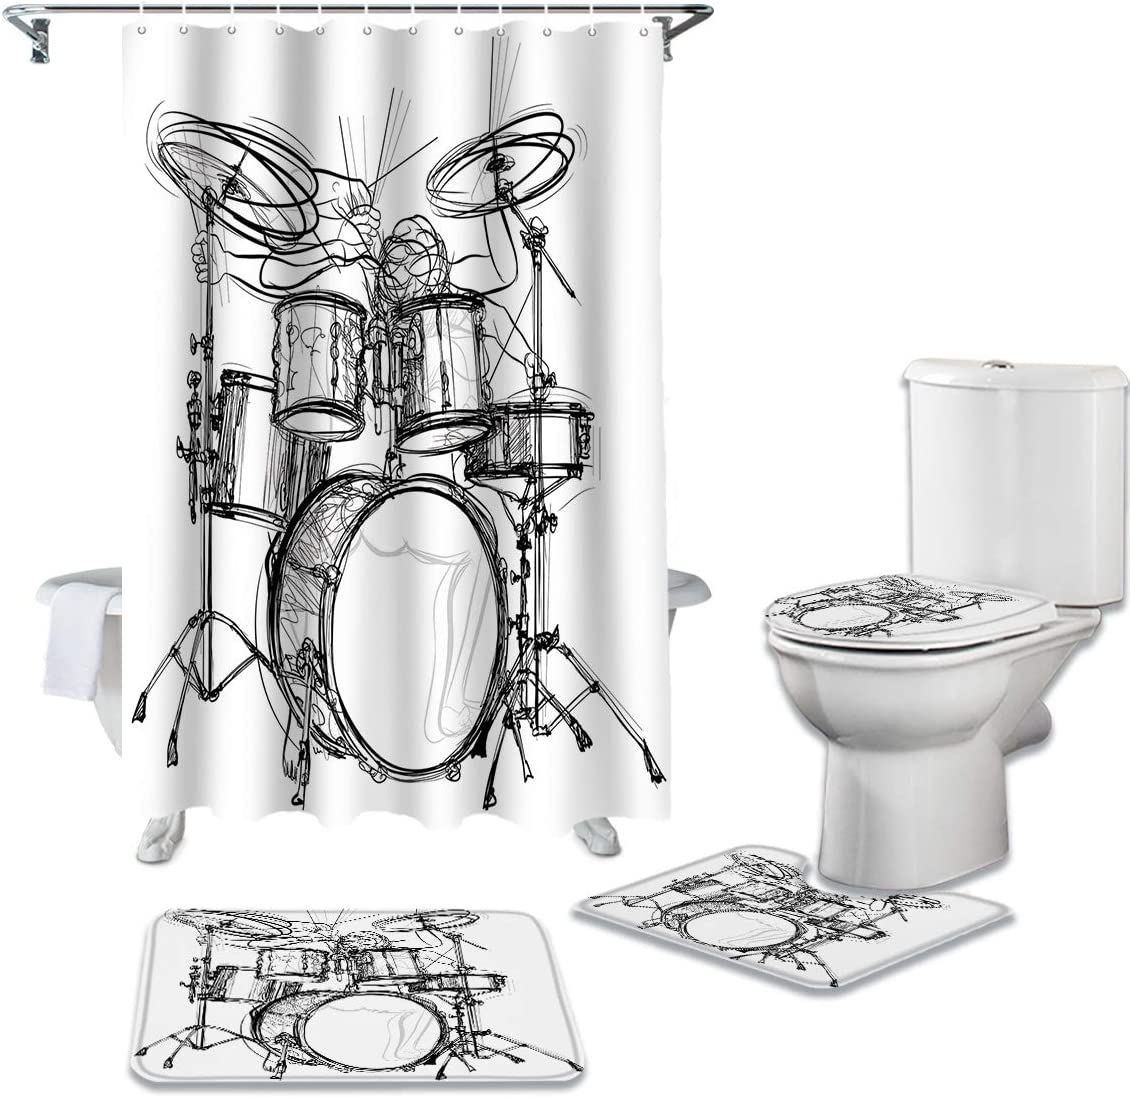 CHARMHOME 4 Piece Shower Popular popular Curtain Non-Slip Toilet Under blast sales Rug Sets with